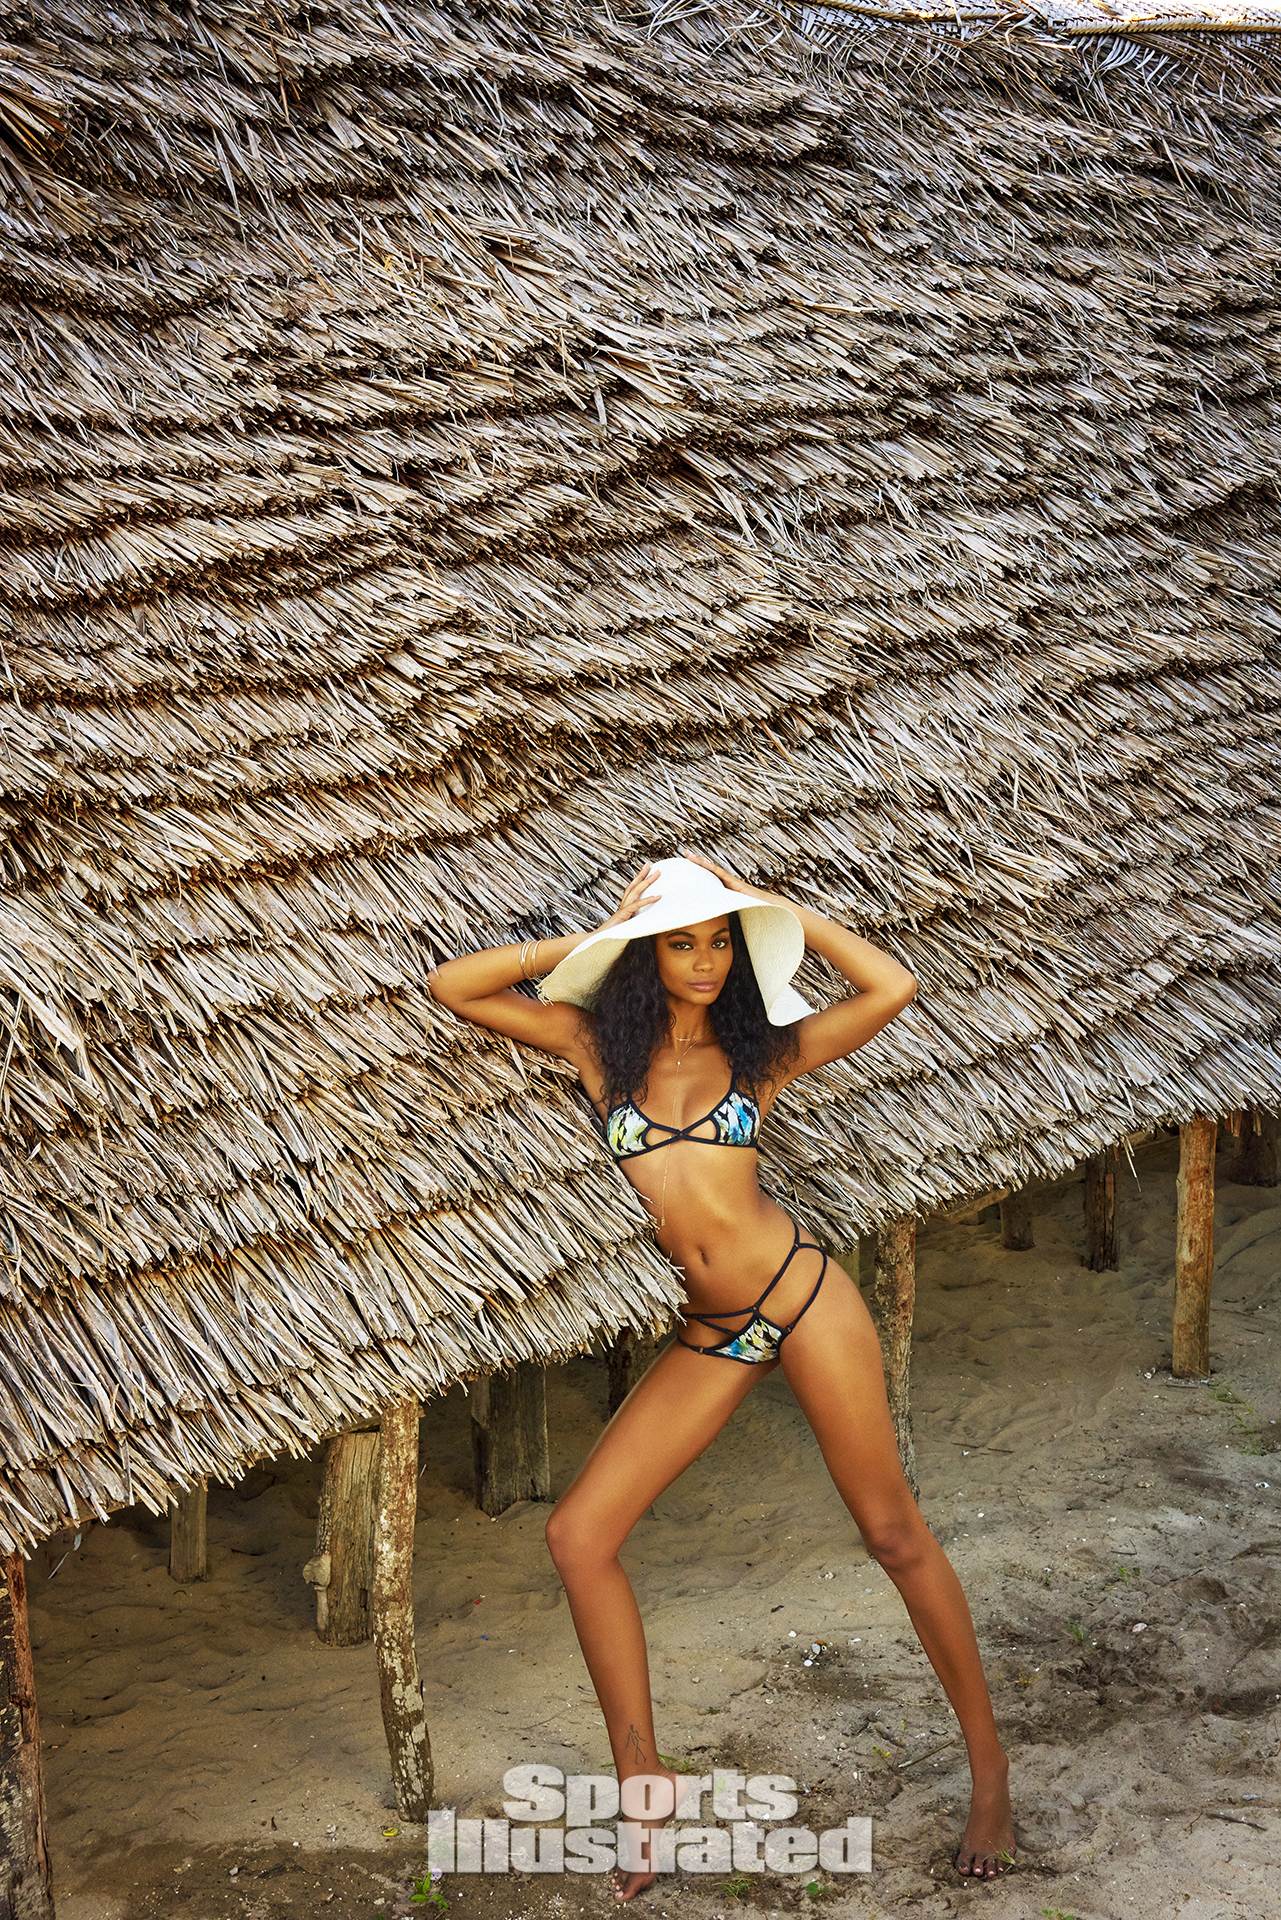 Chanel Iman was photographed by Ruven Afanador in Zanzibar. Swimsuit by Indie Soul.